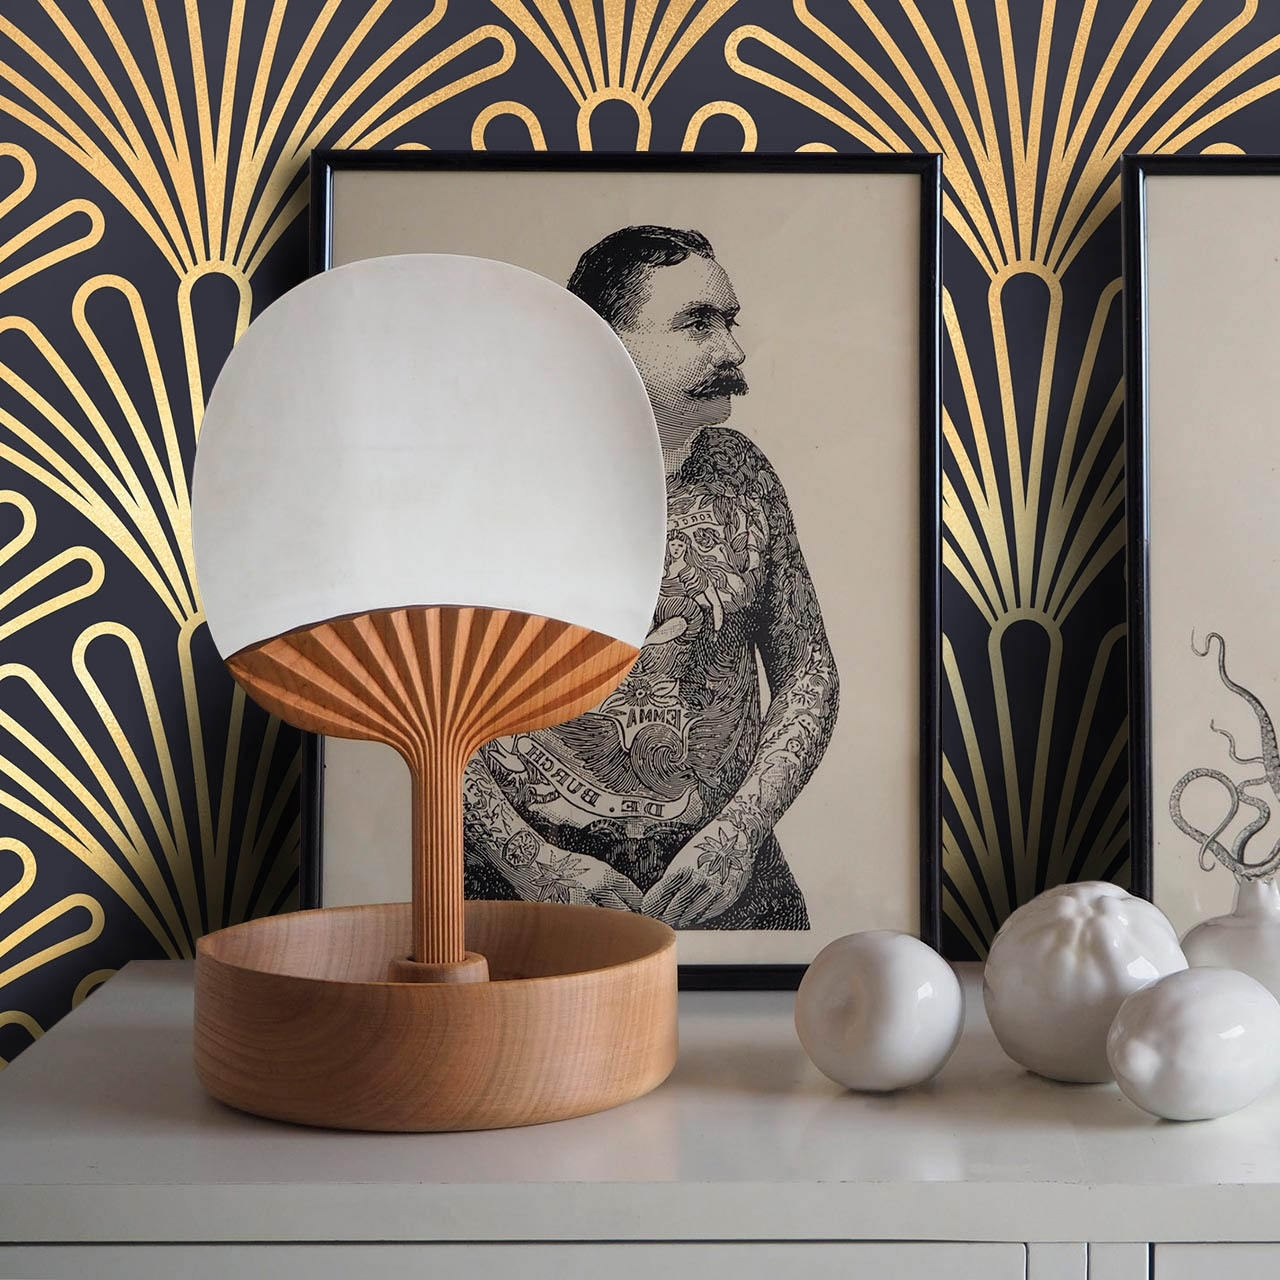 Preferred Art Deco Wall Art Pertaining To Art Deco Wallpaper, 1930S Vintage Wallpaper, Retro Wallpaper (View 11 of 15)